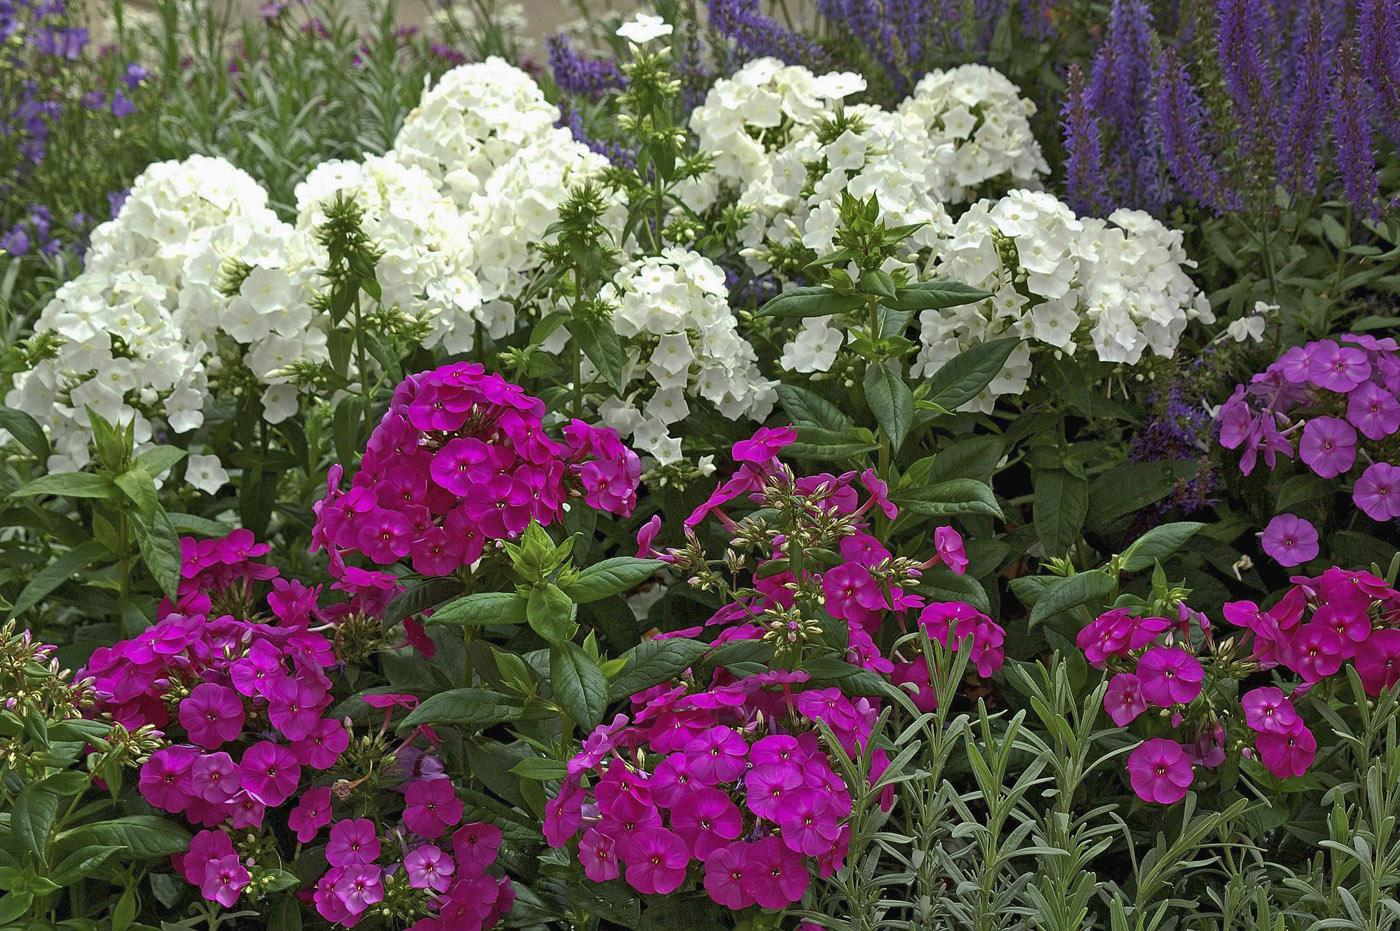 Perennial phlox bloom from the end of May through the first frost and are available in more than 100 varieties. These Peacock series phlox combine well with the rich colors of salvias. (Photo by Norman Winter)